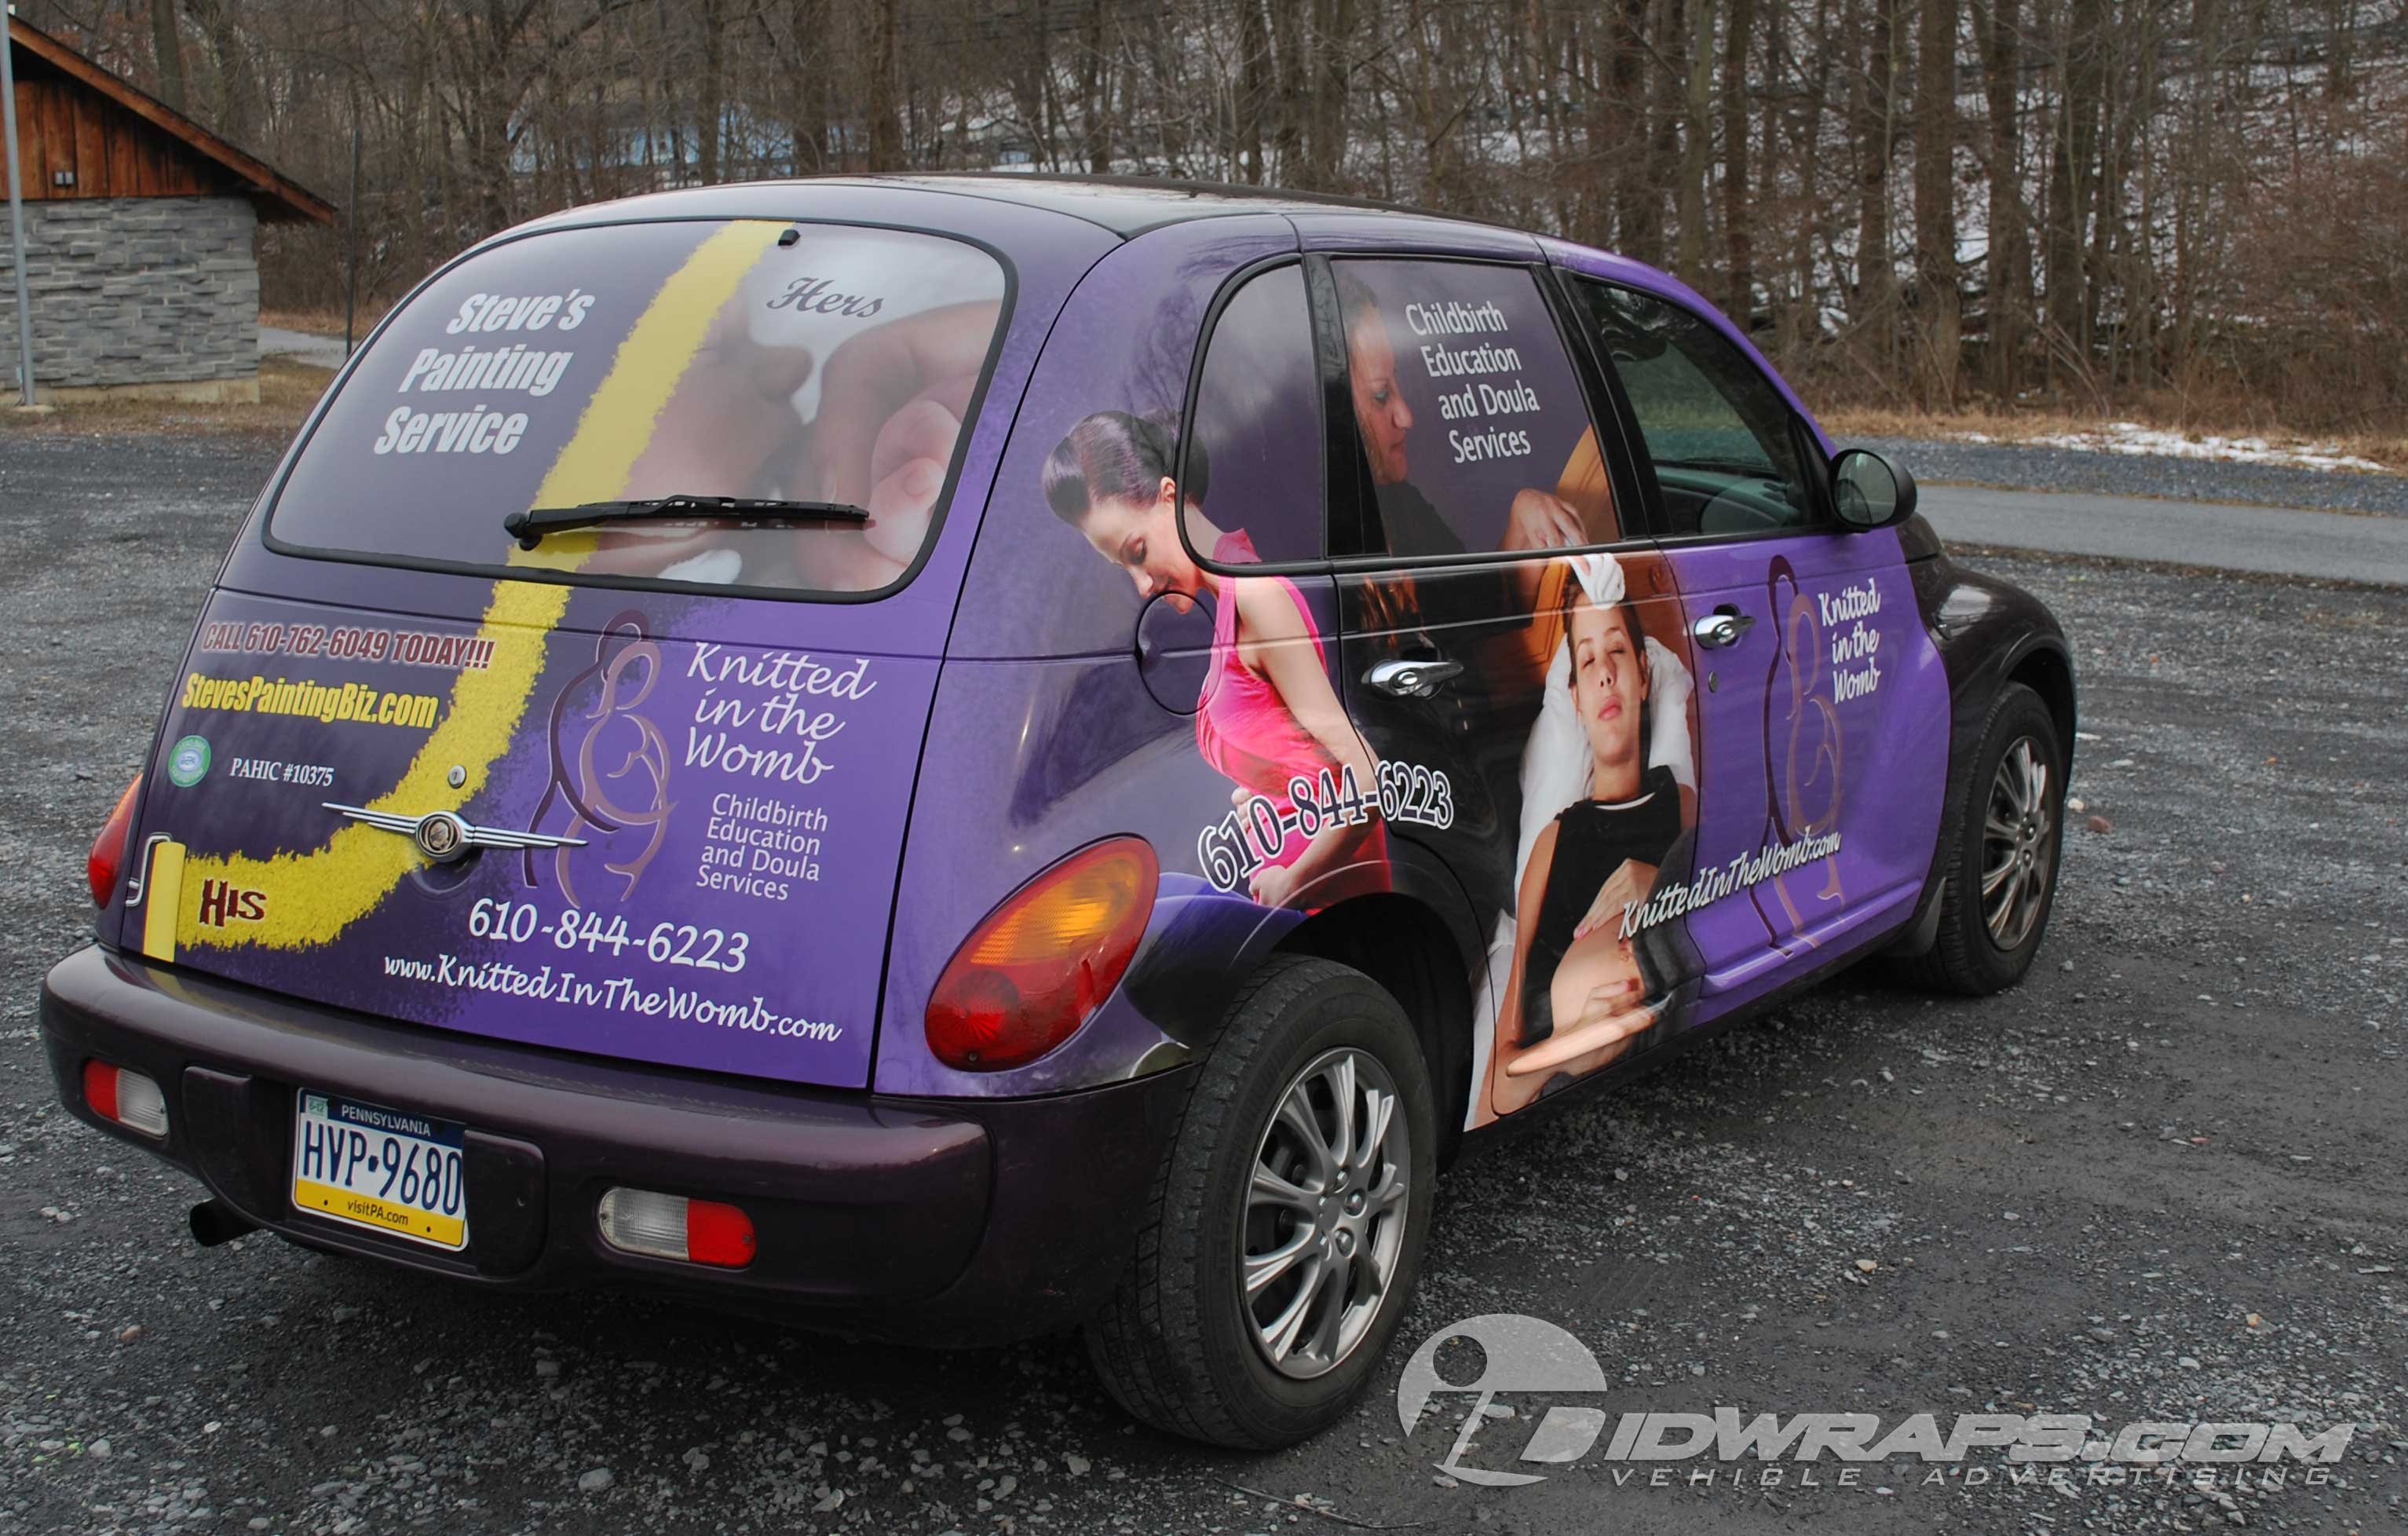 Pt Cruiser Wrap For Painting Business In Allentown Pa